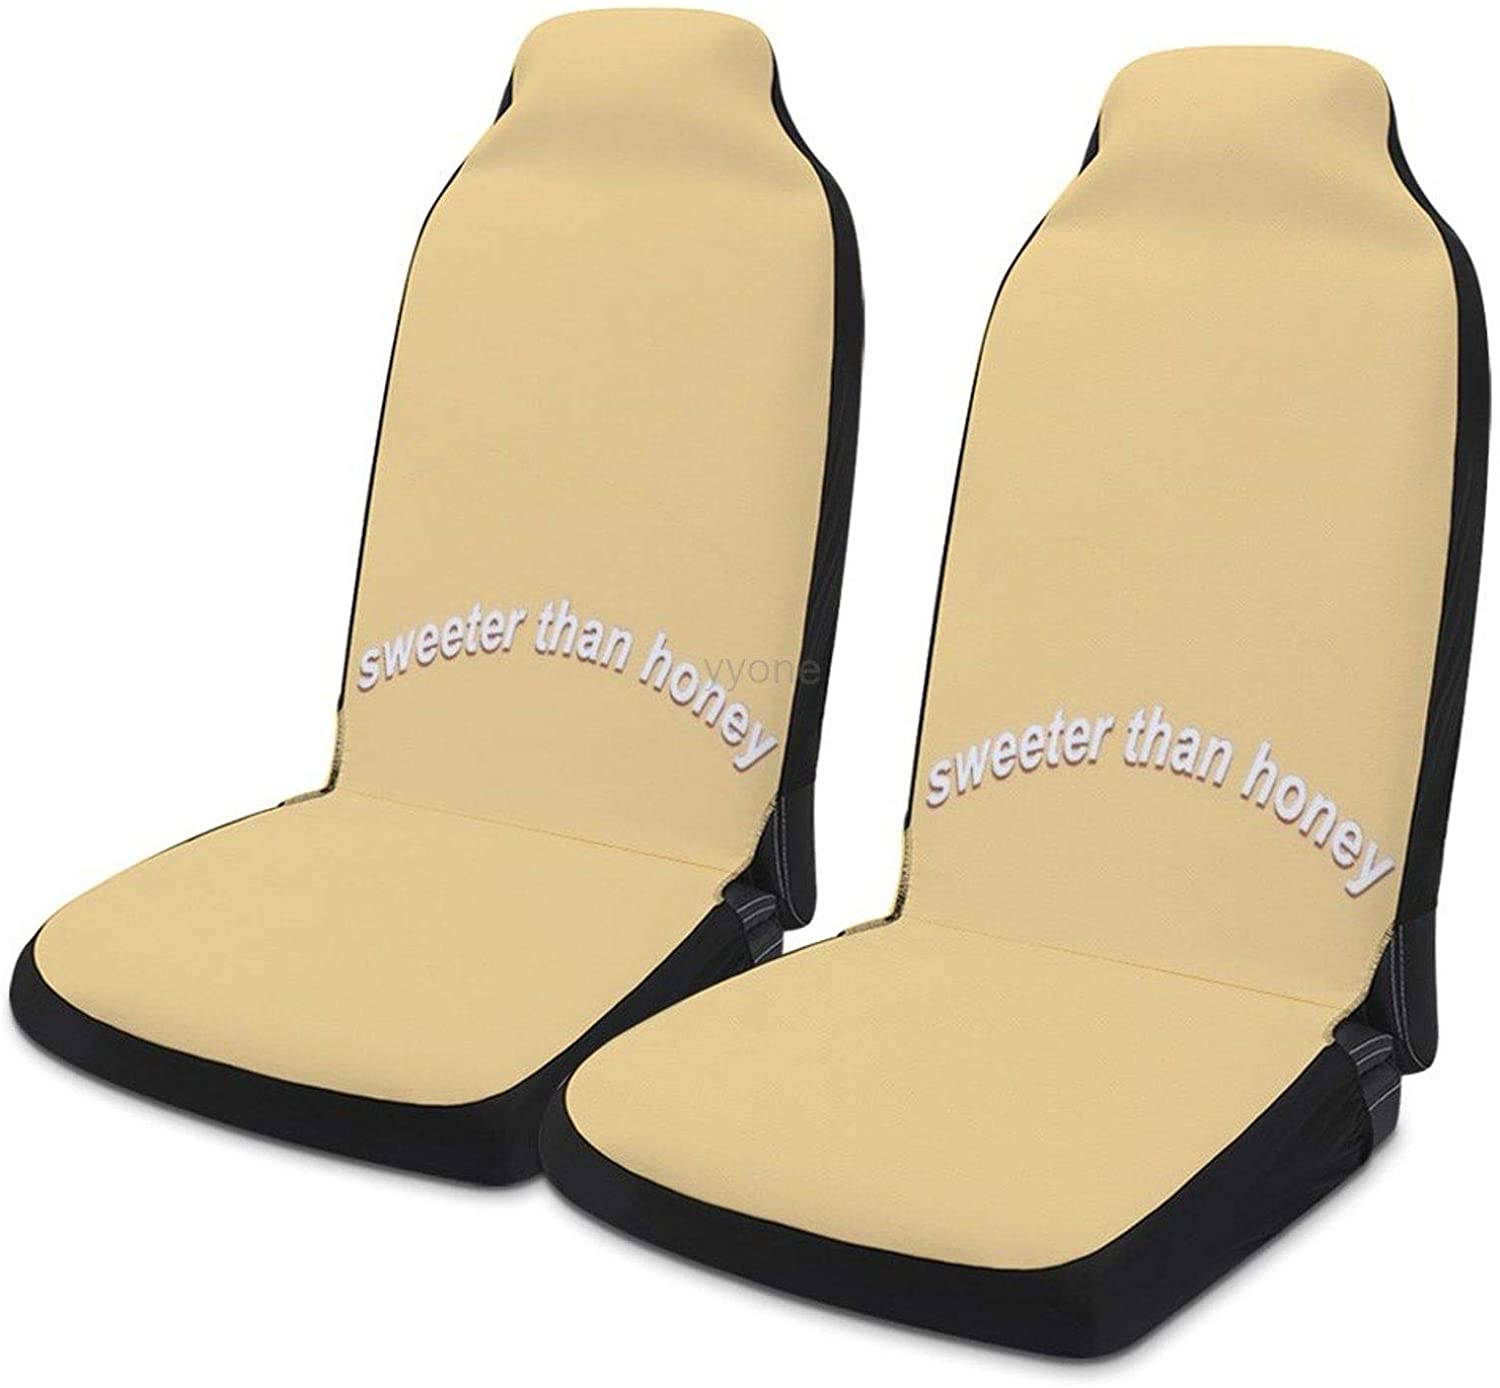 Sweeter Than Honey Universal Fit Car Seat Covers, 2pc Auto Front Drive Seats Protector Compatible Fits for Most Car SUV Sedan Truck Van